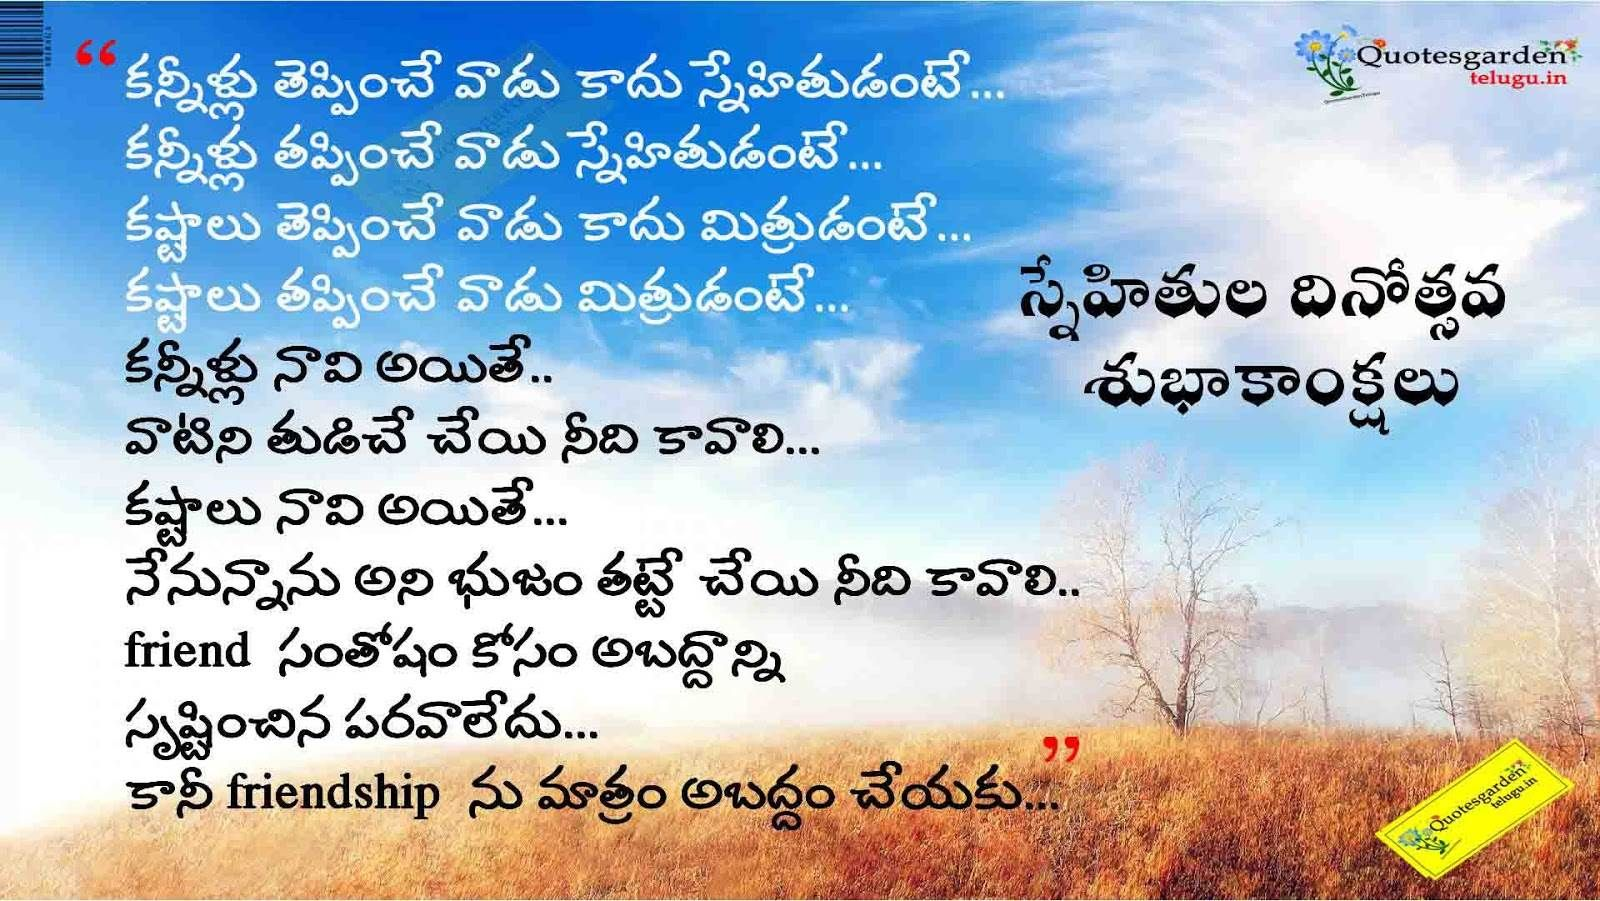 Friendship day telugu quotes wishes greetings images wallpapers friendship day telugu quotes wishes greetings images wallpapers 16001227 friendship day quotes adorable kristyandbryce Image collections